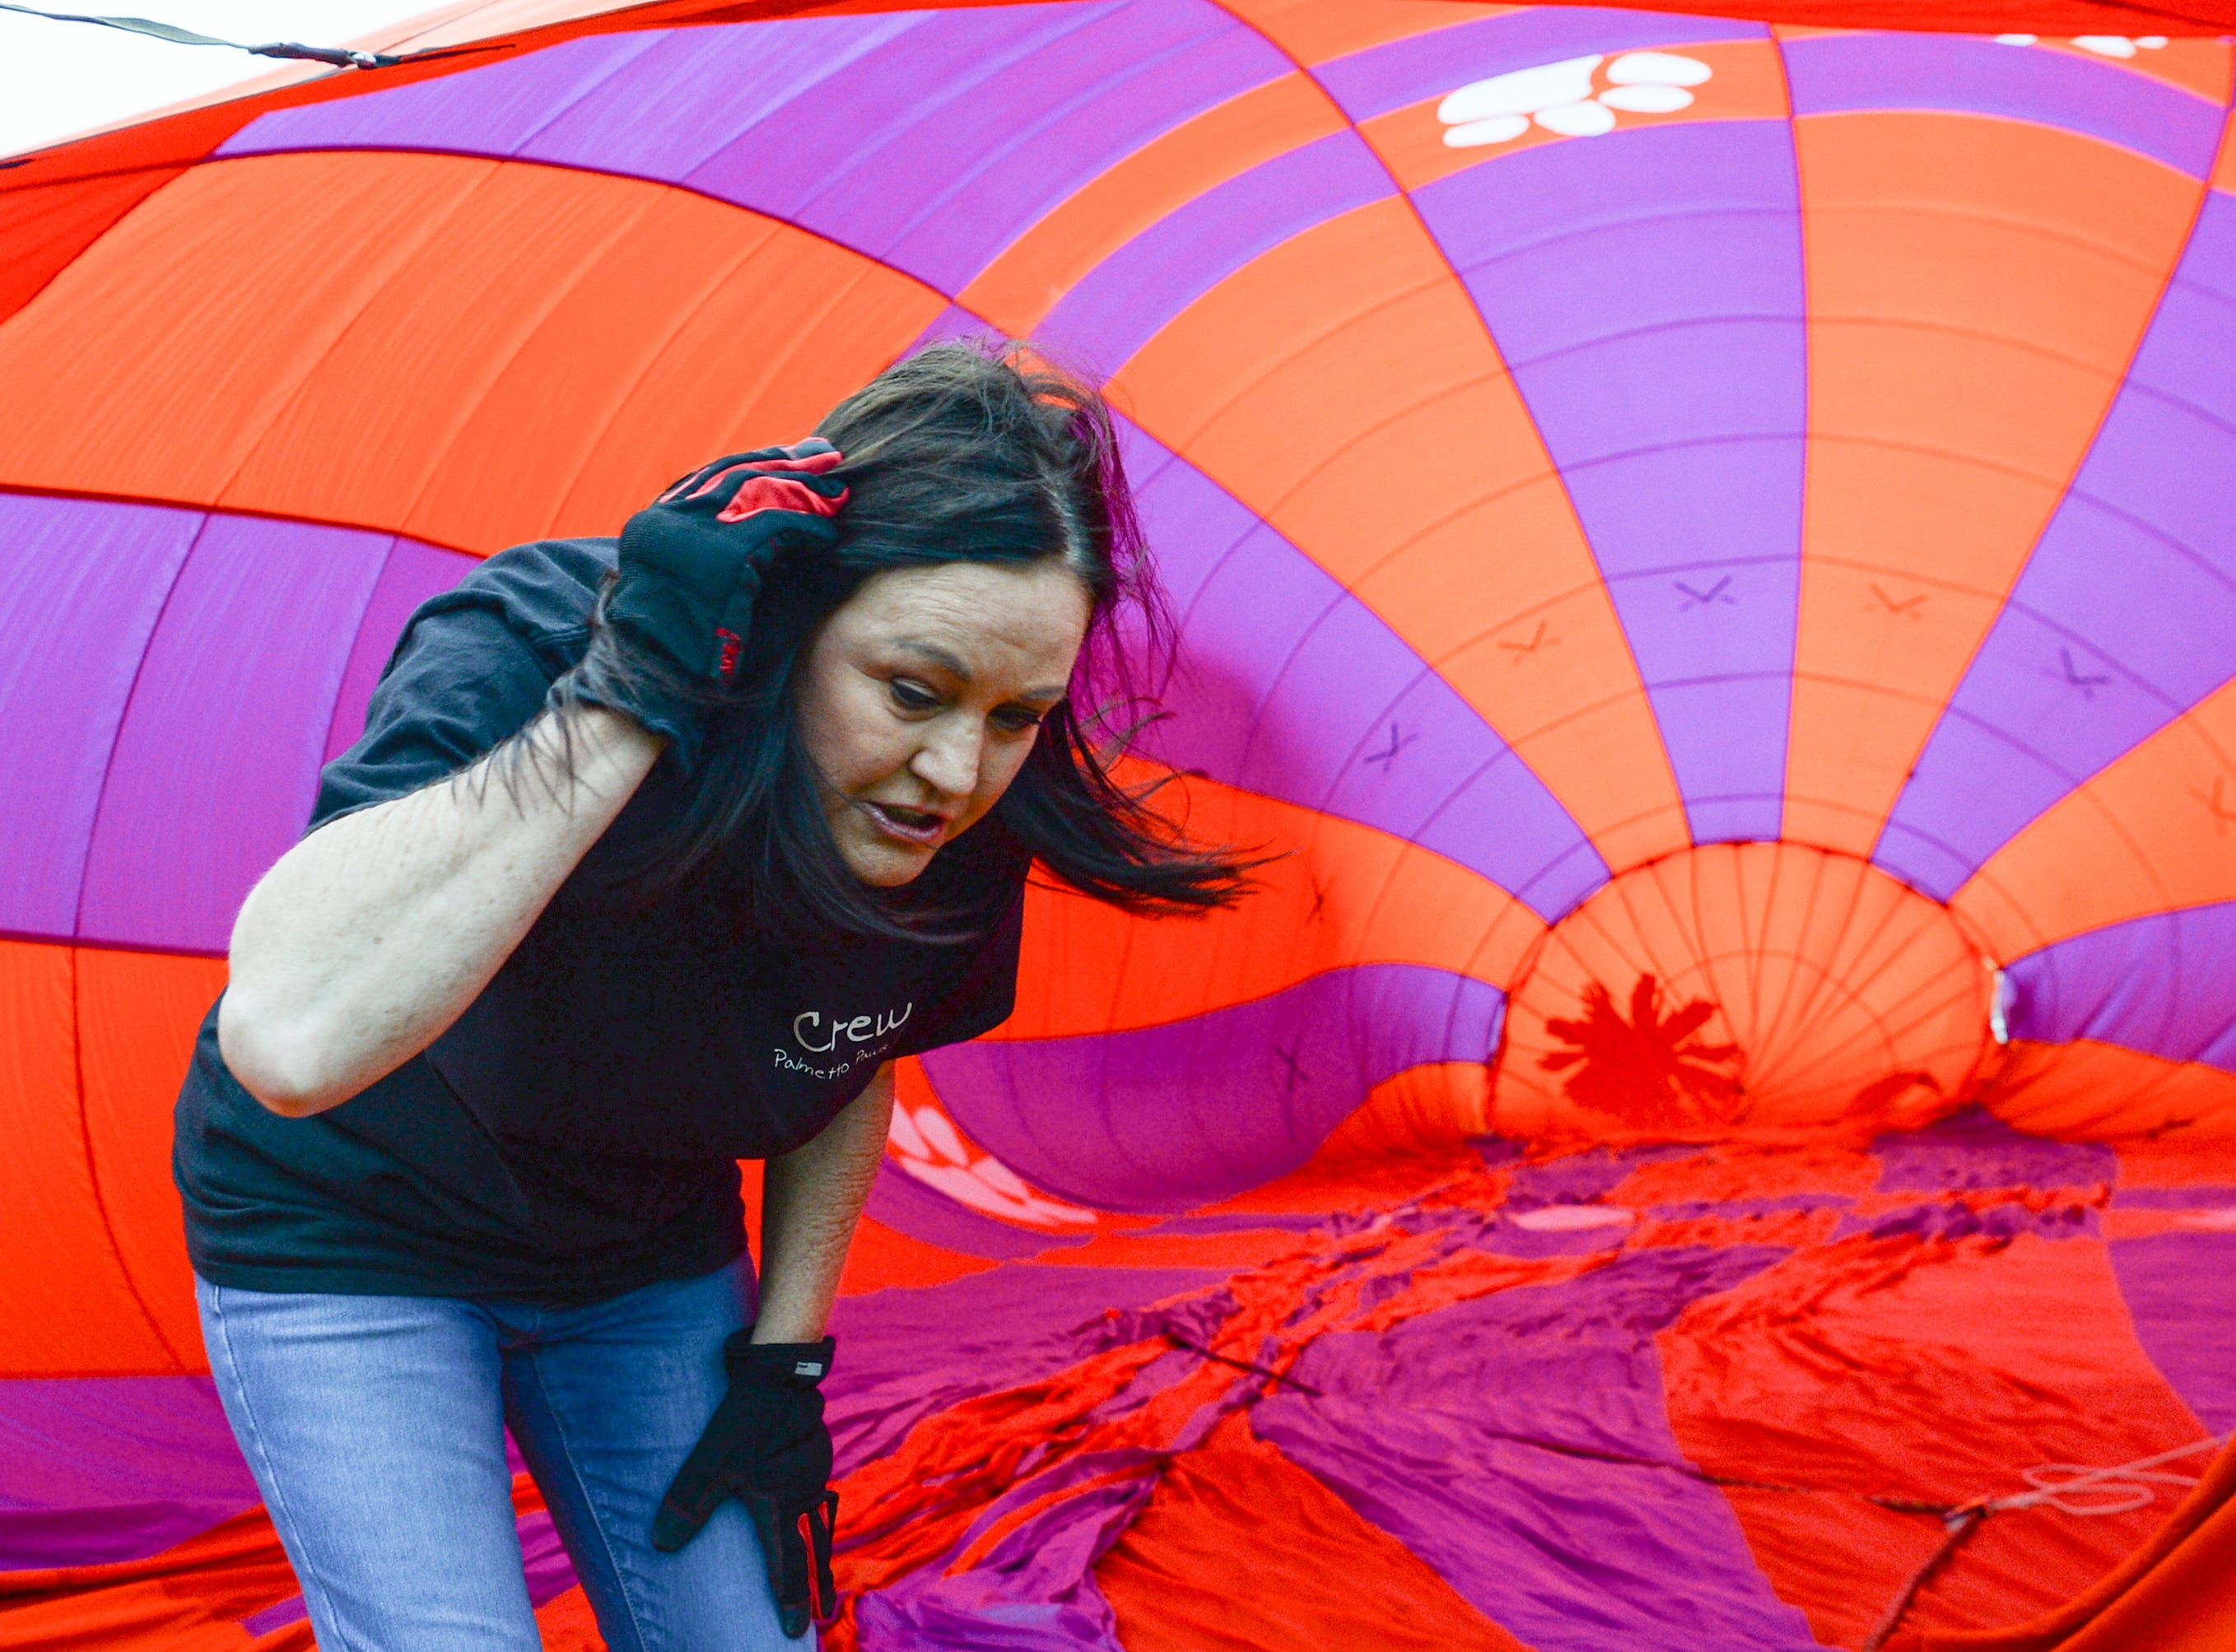 "Pilot Donna Hendershot of Anderson helps inflate the Palmetto Paw balloon during a flight over Rocky River Plantation for the Cancer Association of Anderson Hot Air Balloon Affair in Anderson Friday. The event fundraiser helps the non-profit with helping cancer patients with financial needs and support, which the group executive director Angela Stringer said had 5,000 contacts. ""This is an opportunity for cancer patients, survivors, and their families and caregivers to come out and have a weekend of just peace, and enjoy the balloons. It's just a way to rise above cancer,"" cancer survivor Stringer said."